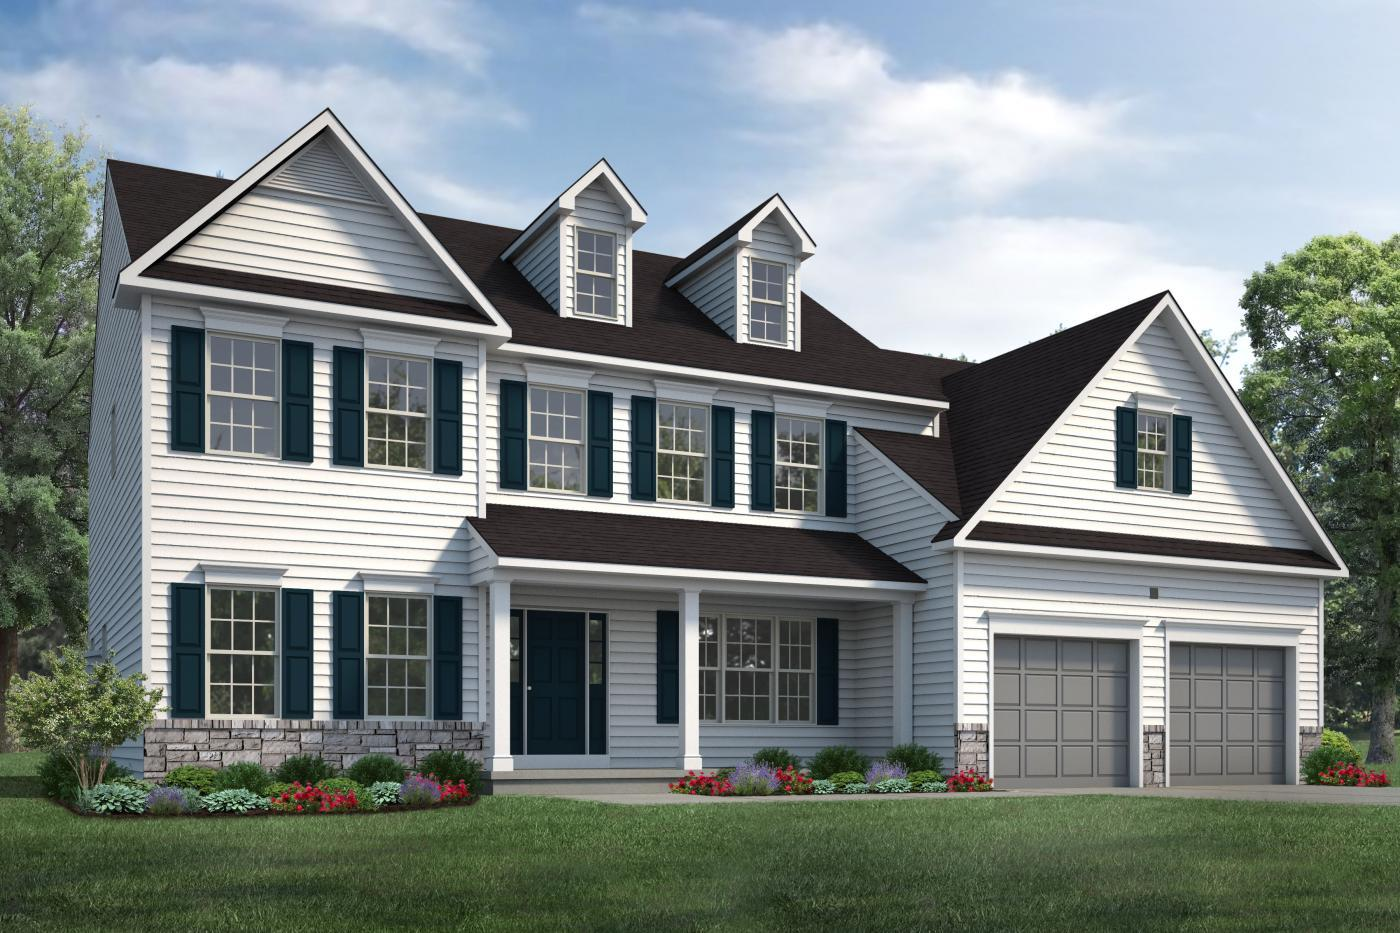 New Homes For Sale In Drums Pa